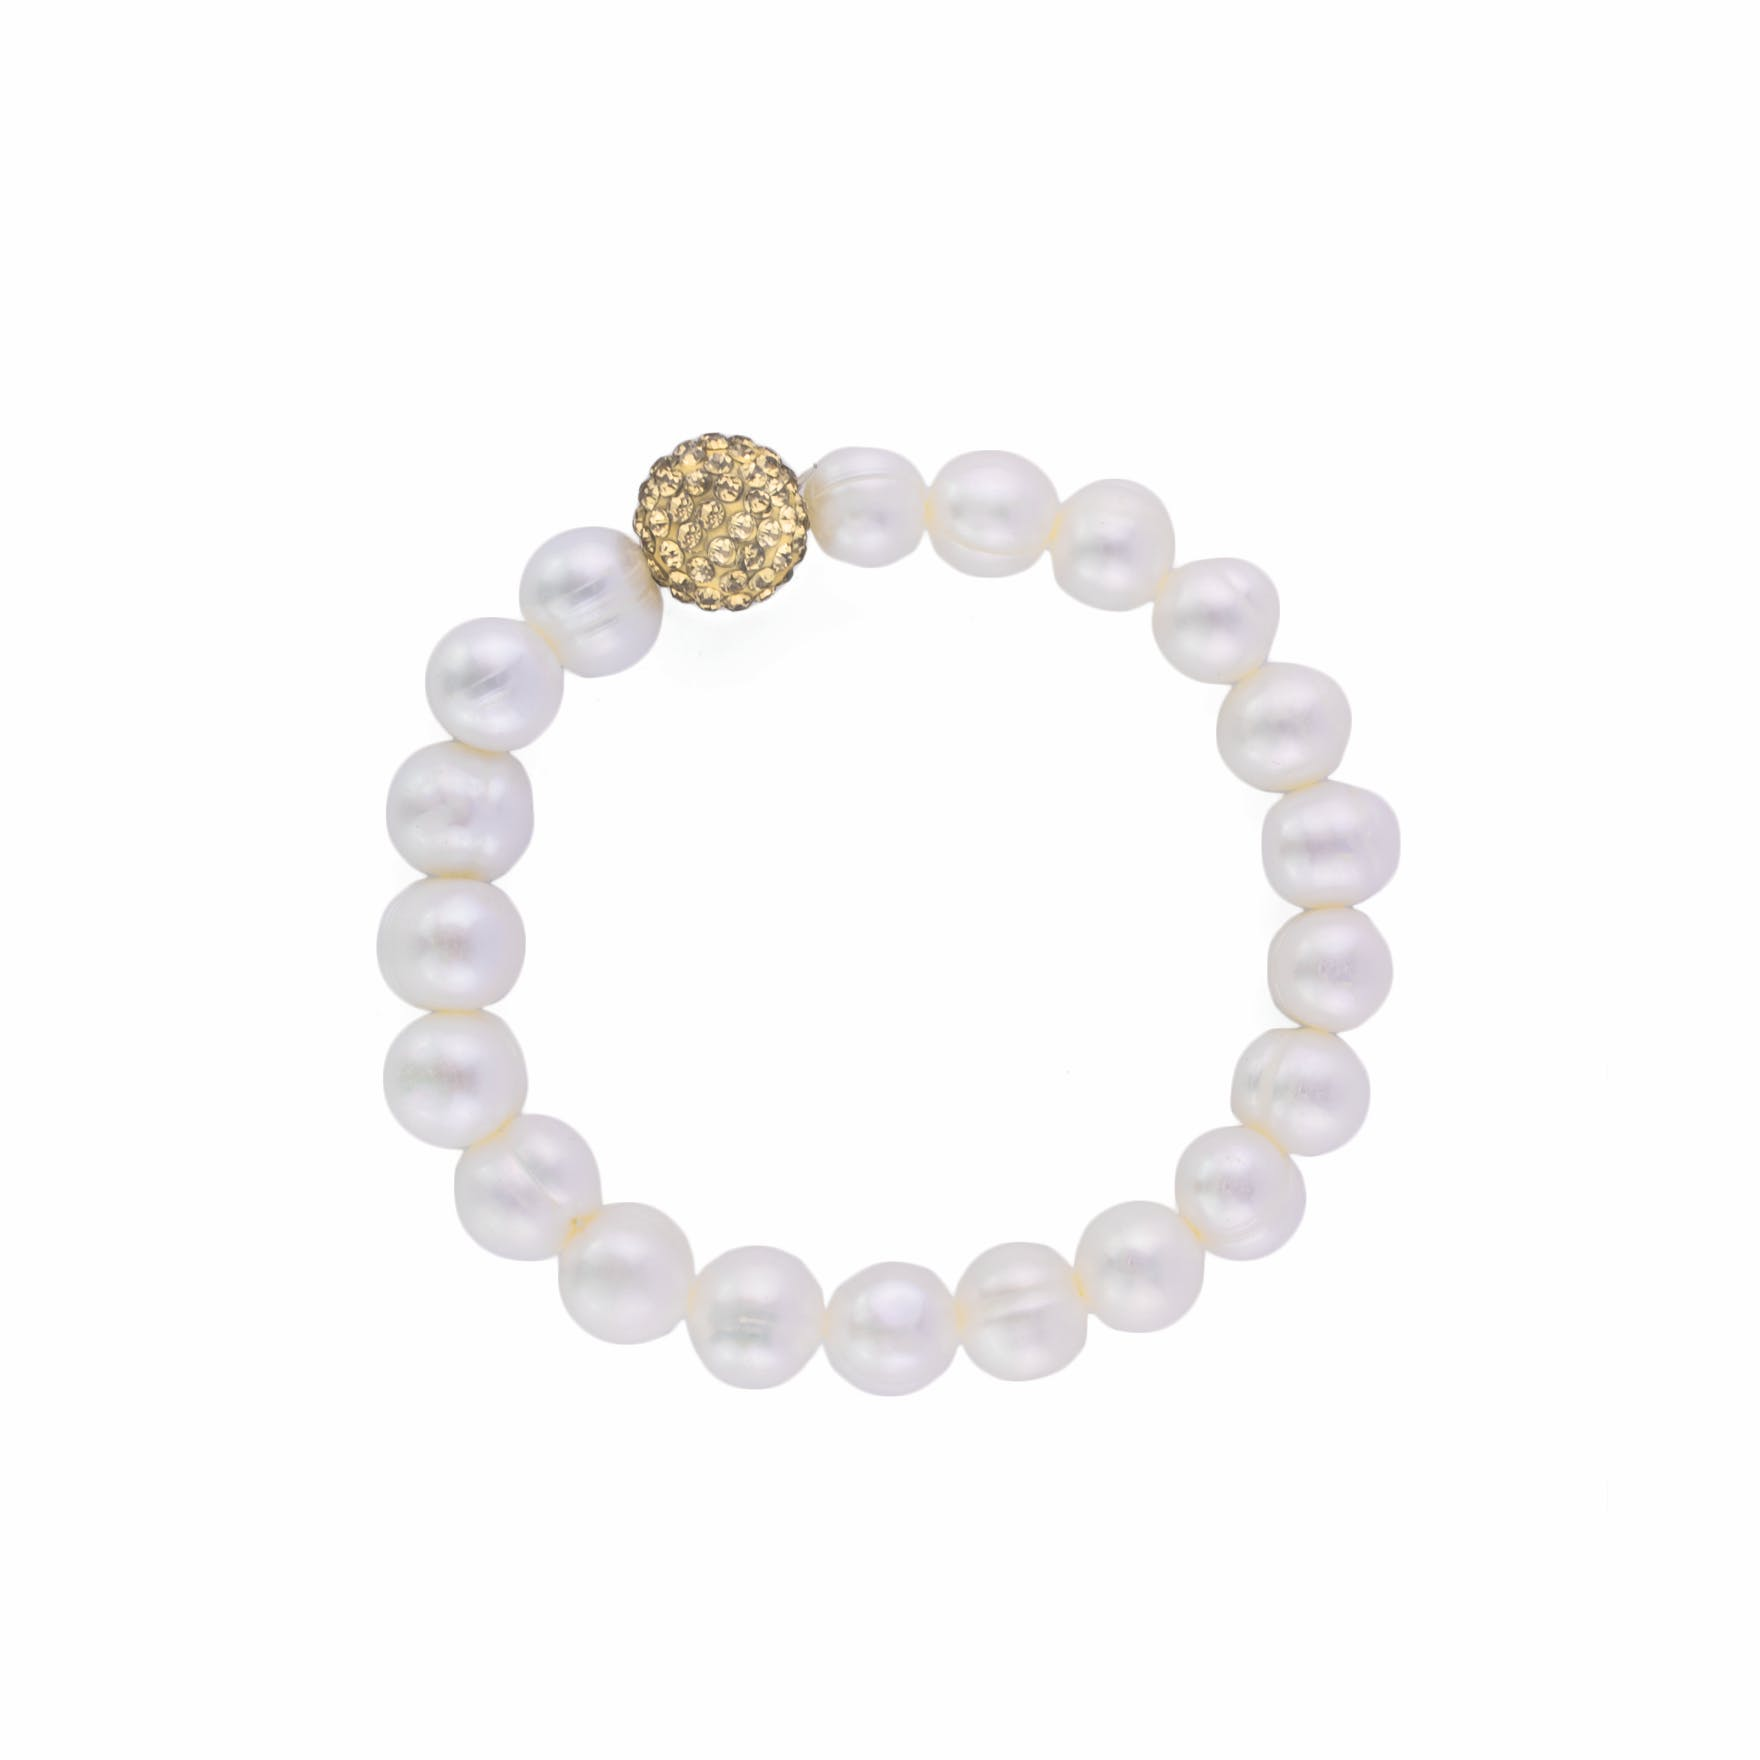 This exquisite real pearl bracelet features a Swarovski gold crystal ball attached.The elegant and subtle real pearl bracelet comes in a presentation gift box